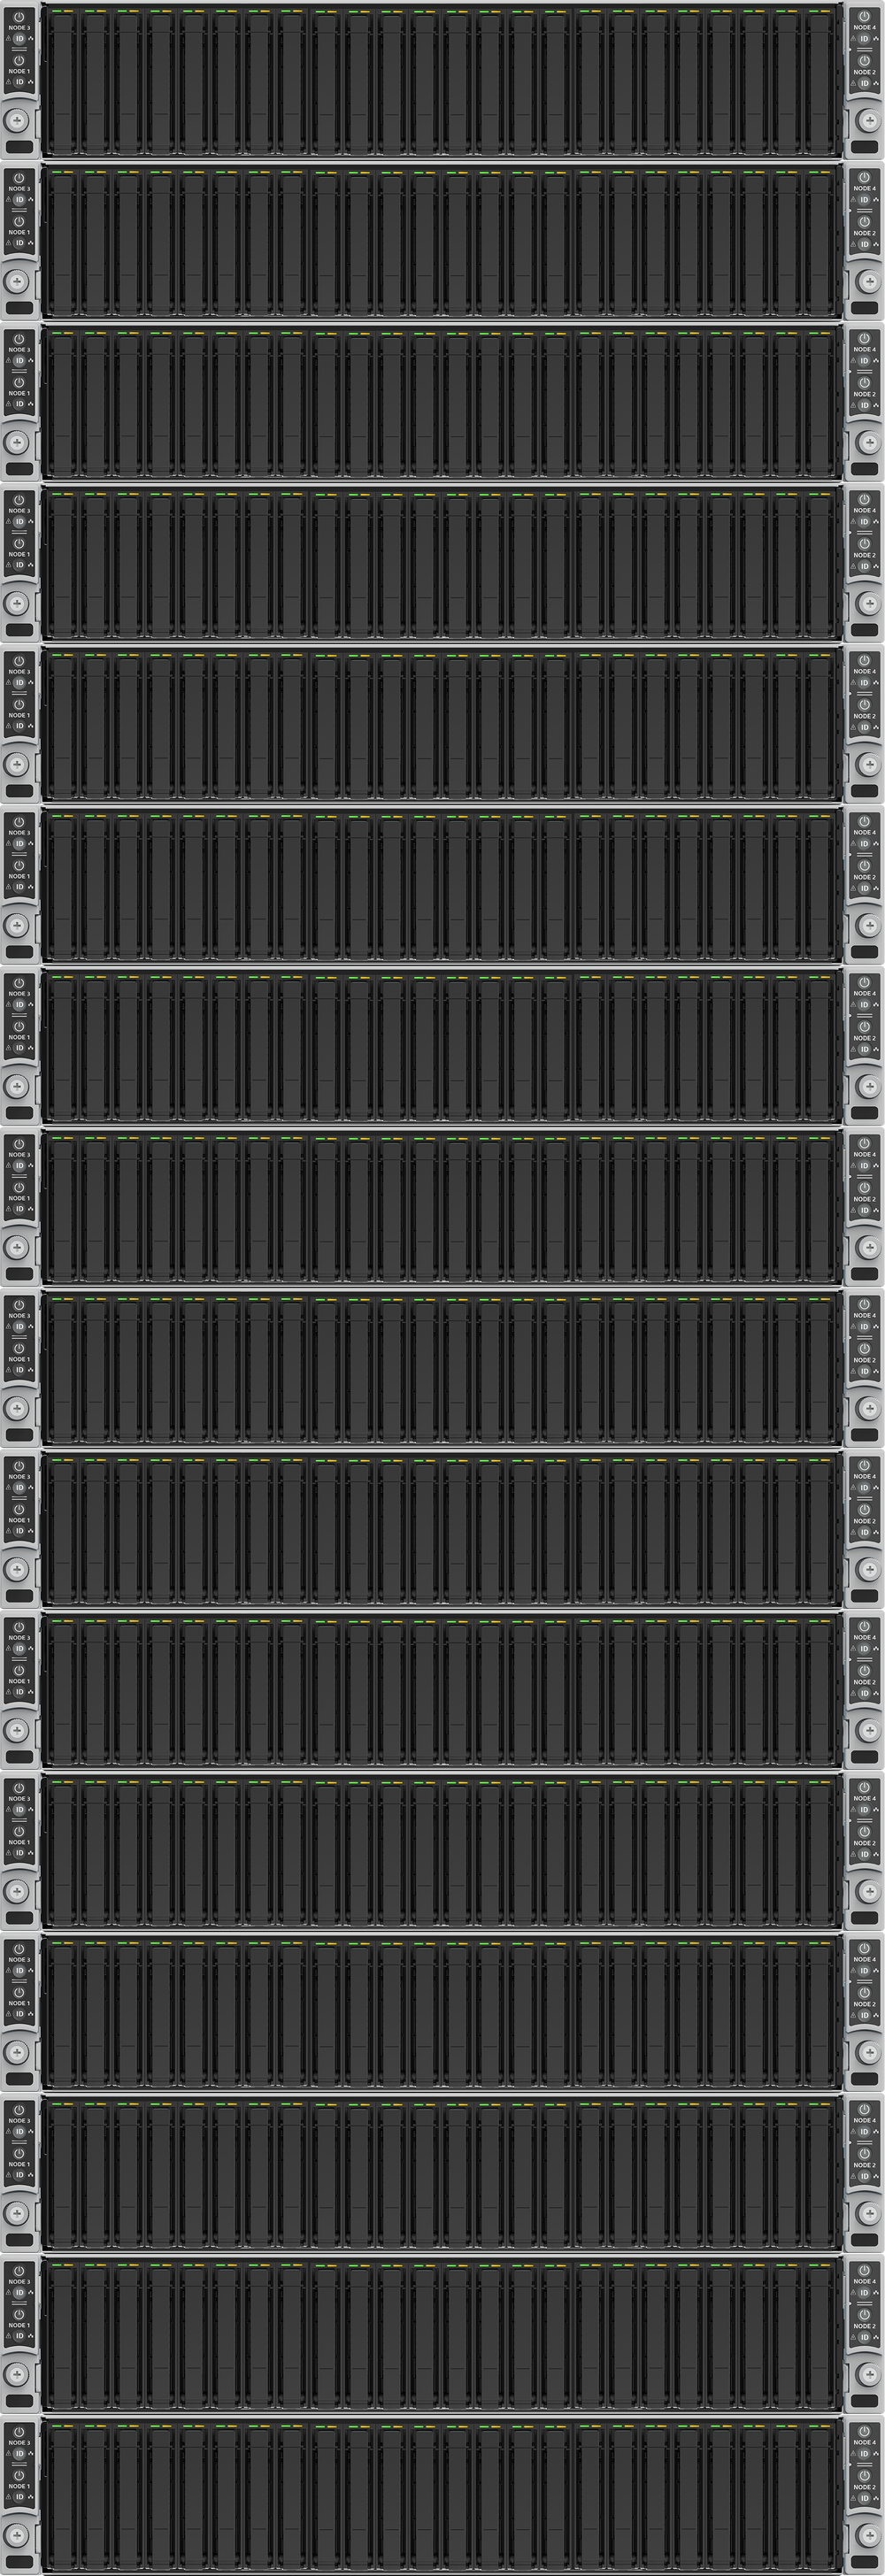 16 node stack.png